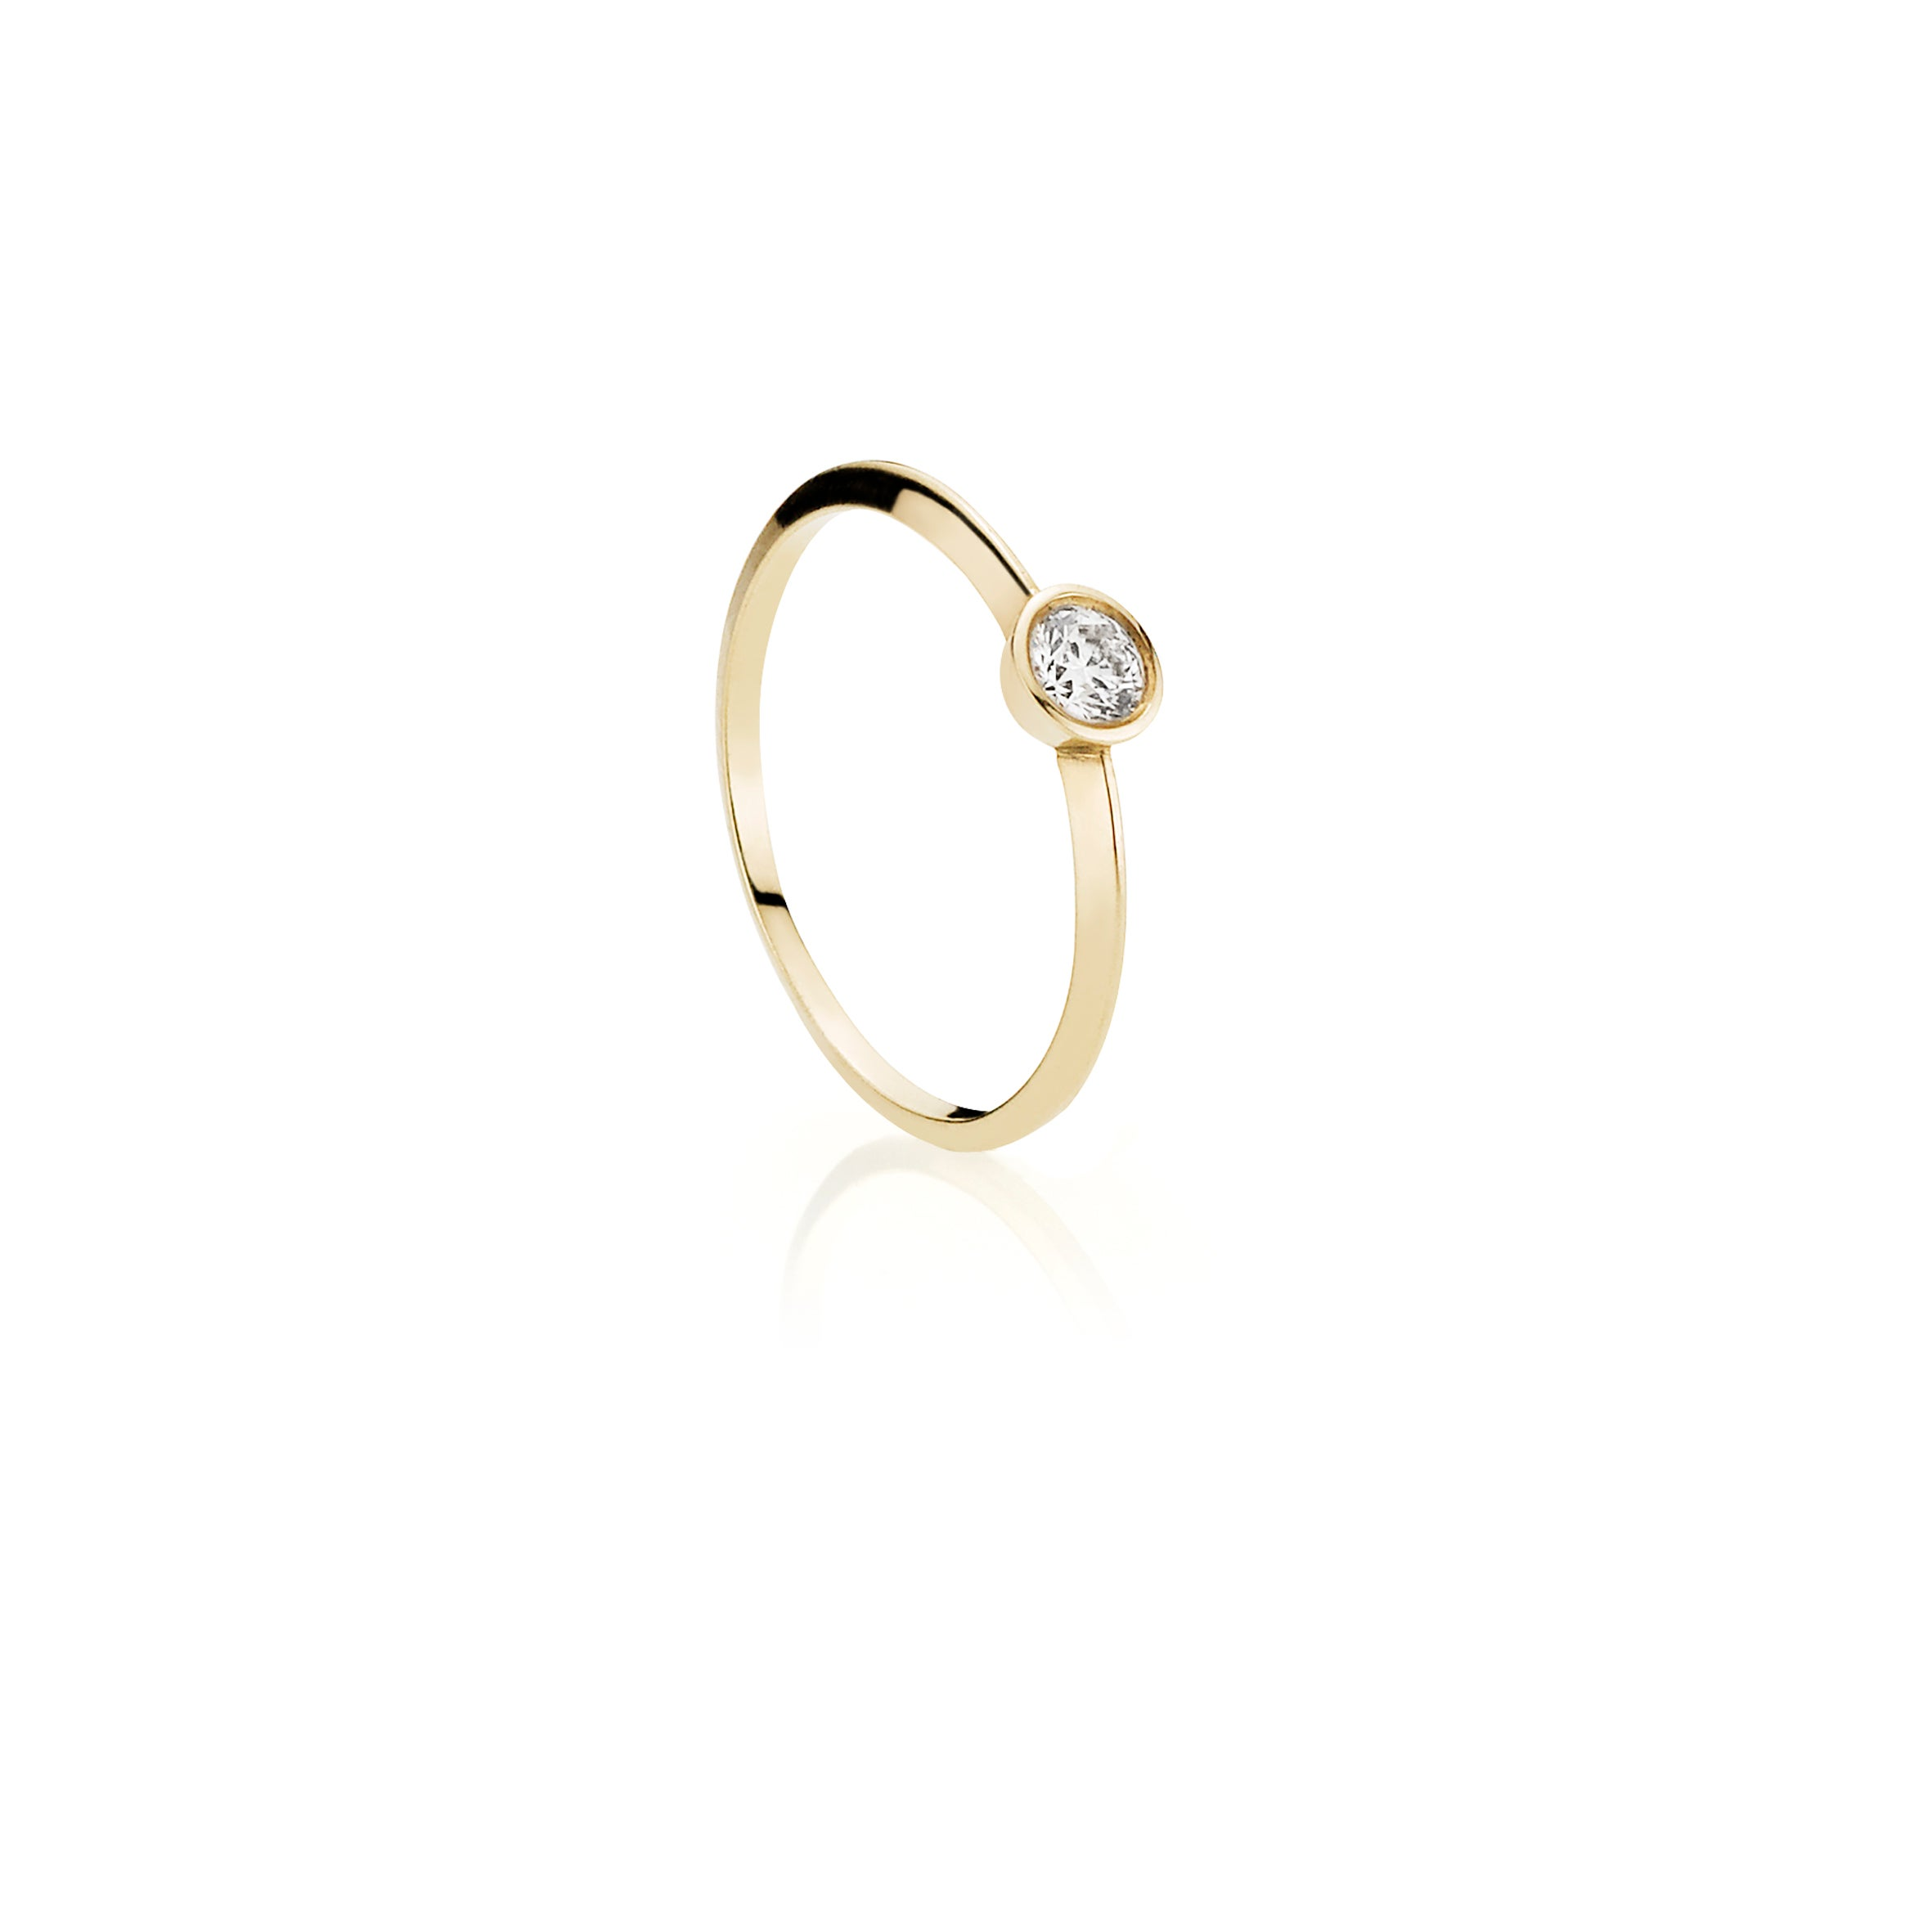 jewellery alix yang ringedit gold a ring products signet